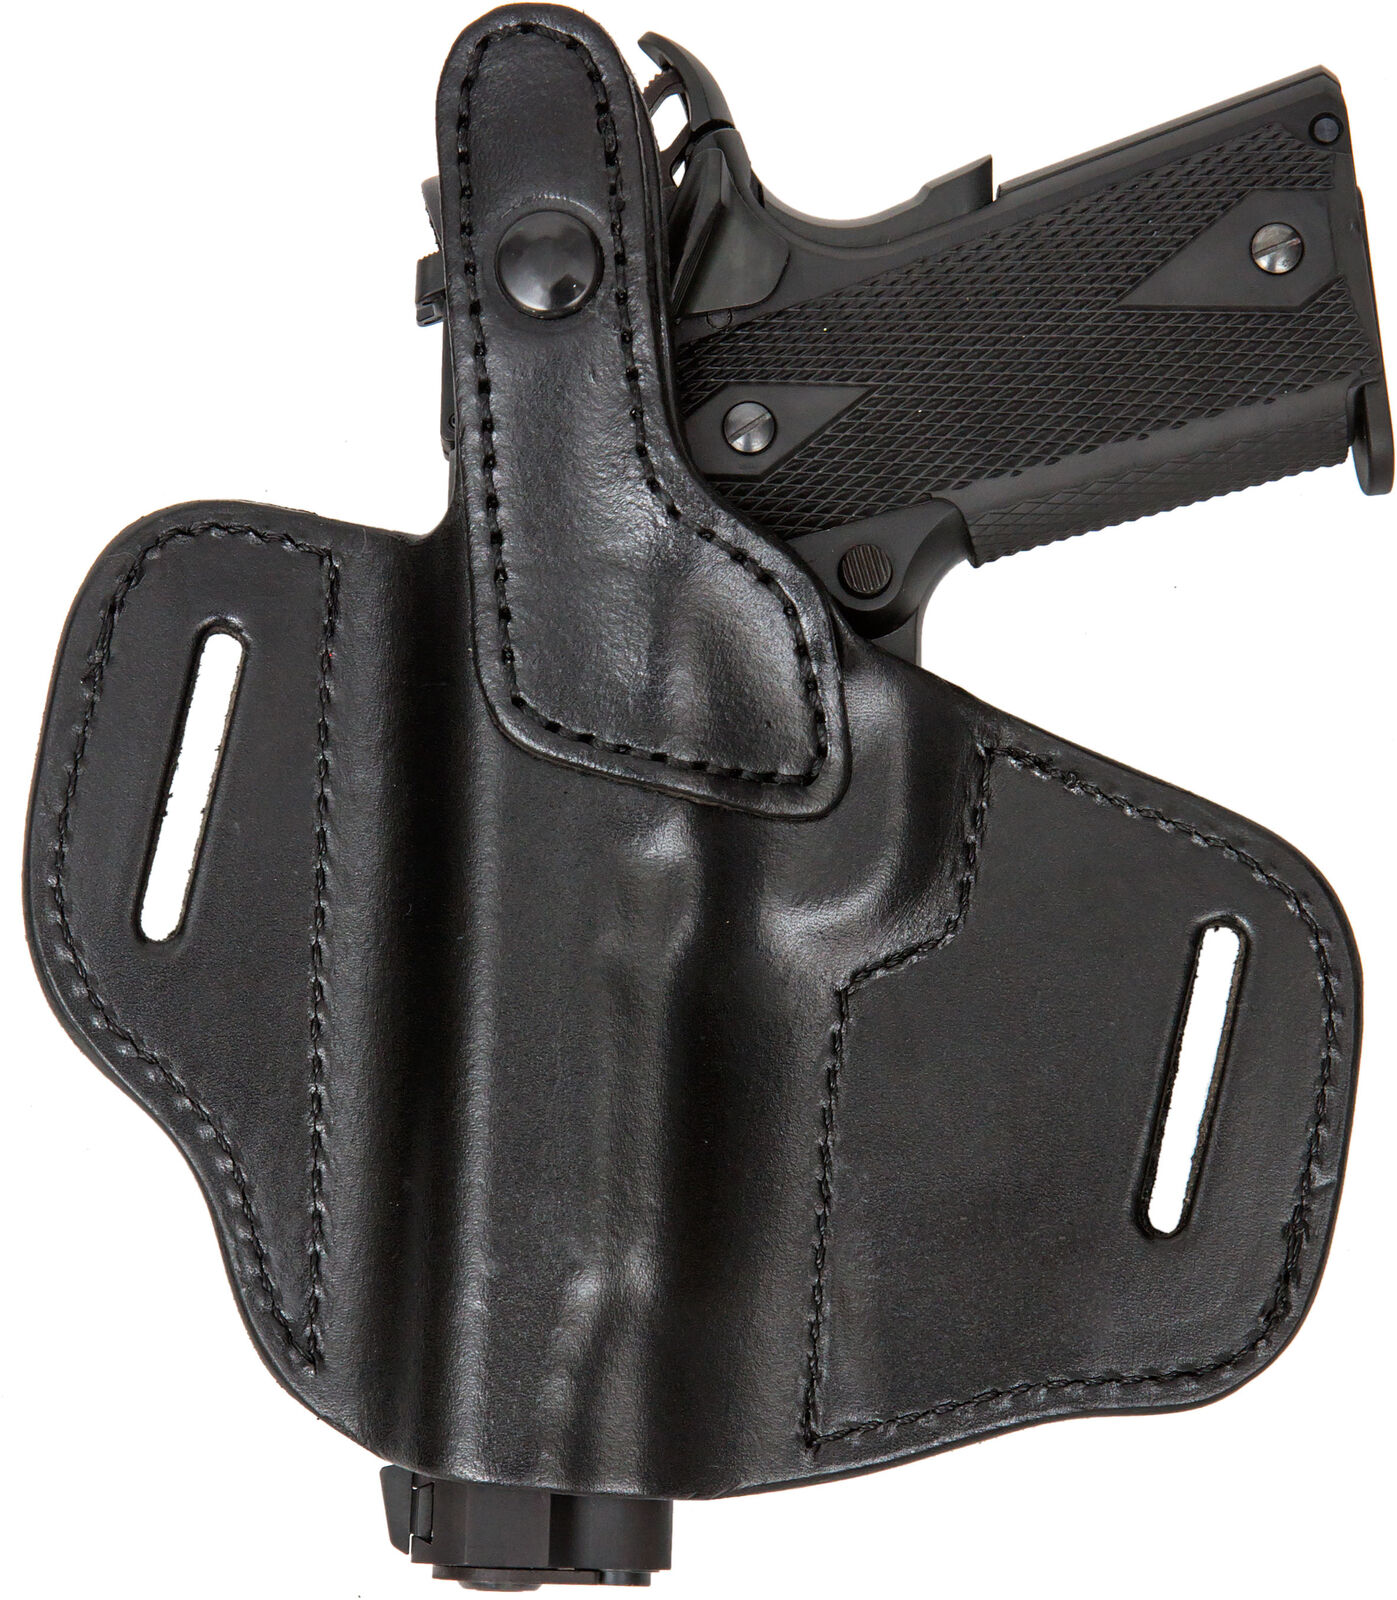 On Duty For Conceal RH LH OWB Leder Gun Holster For Duty Hi-Point 9c 162bc9